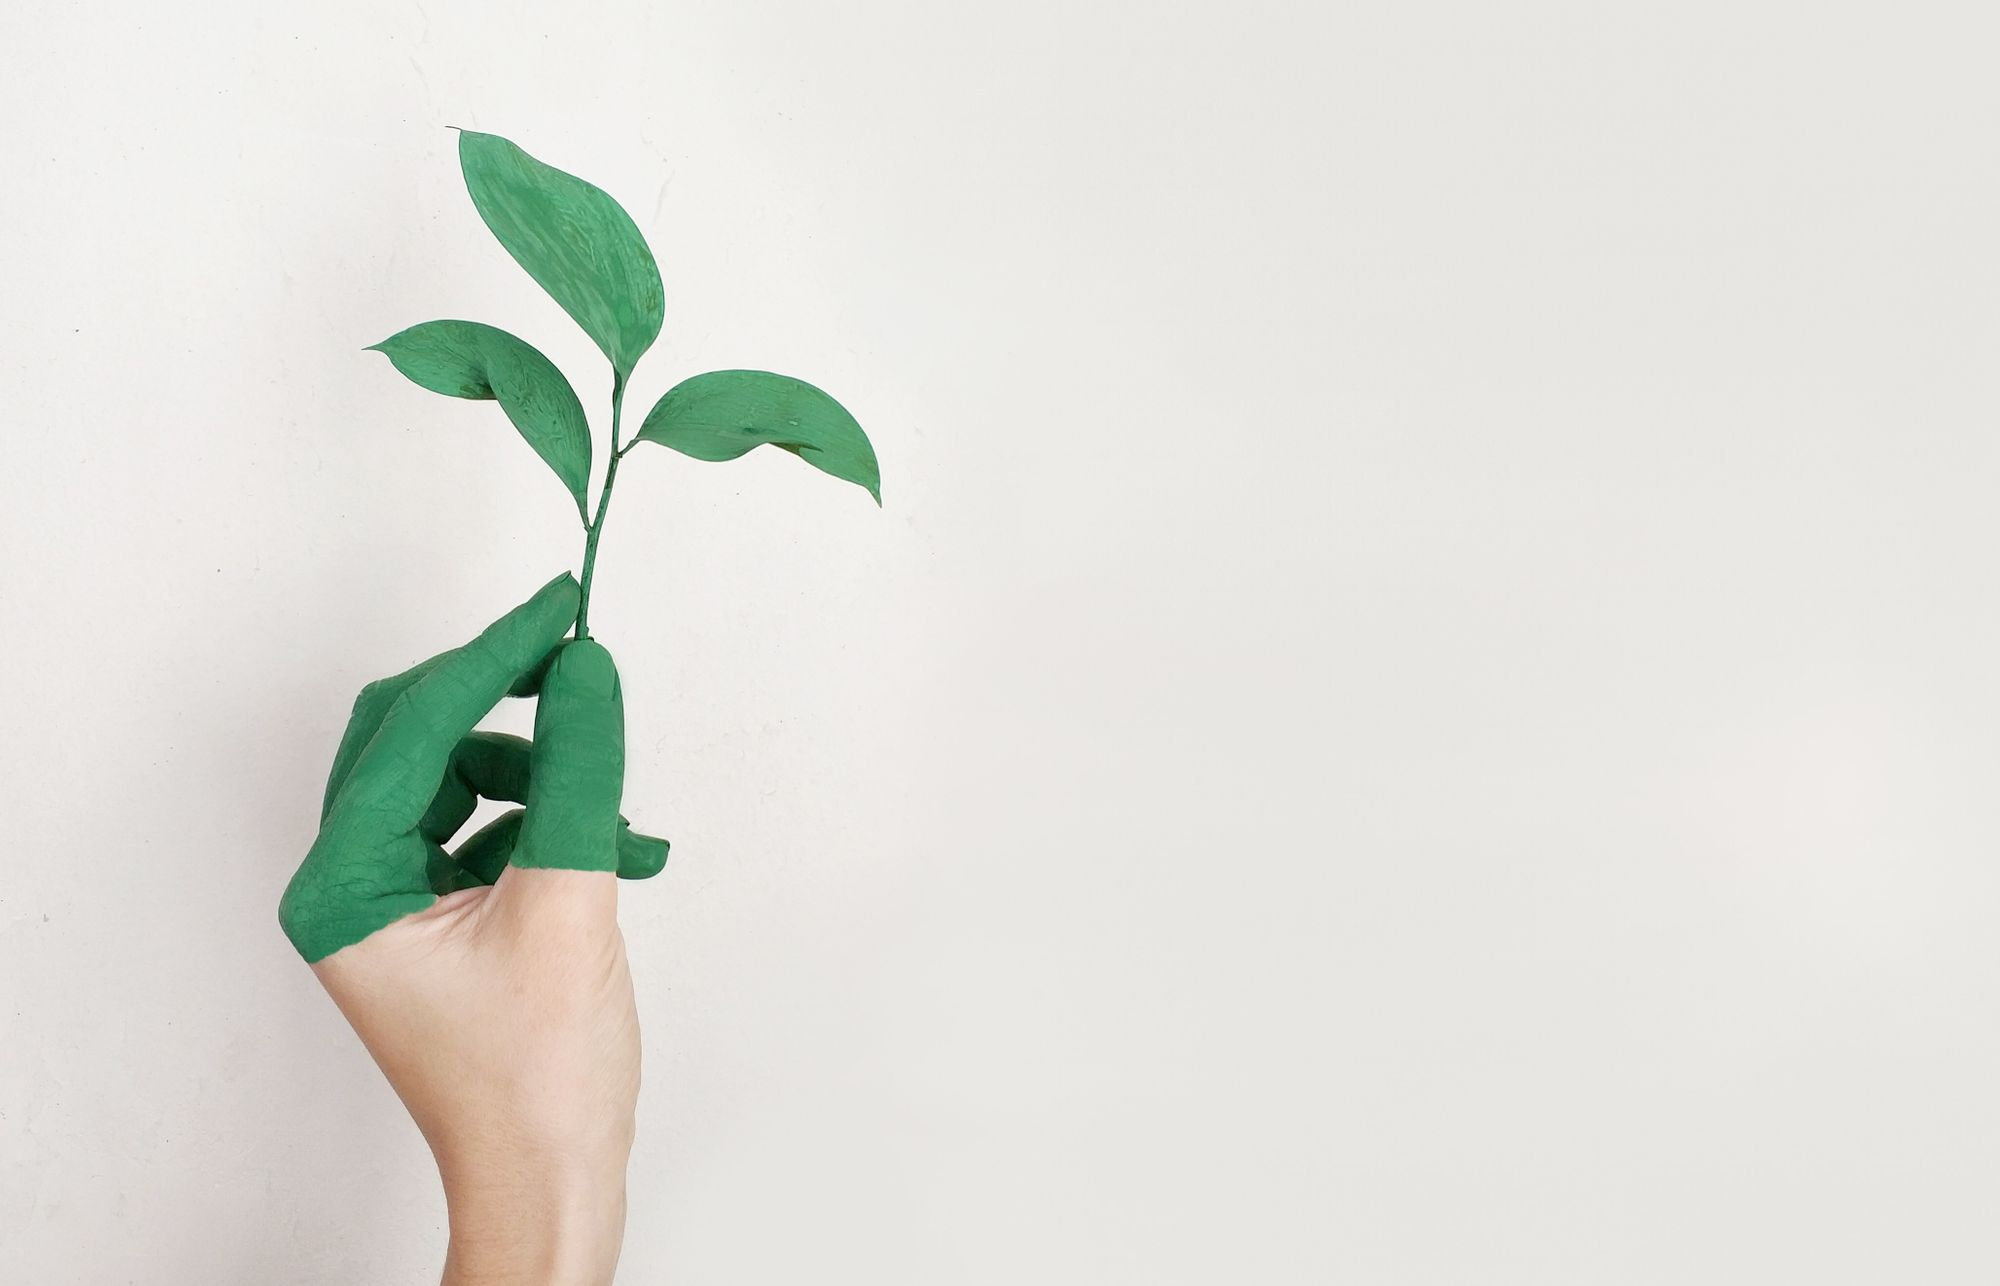 person-s-left-hand-holding-green-leaf-plant-886521